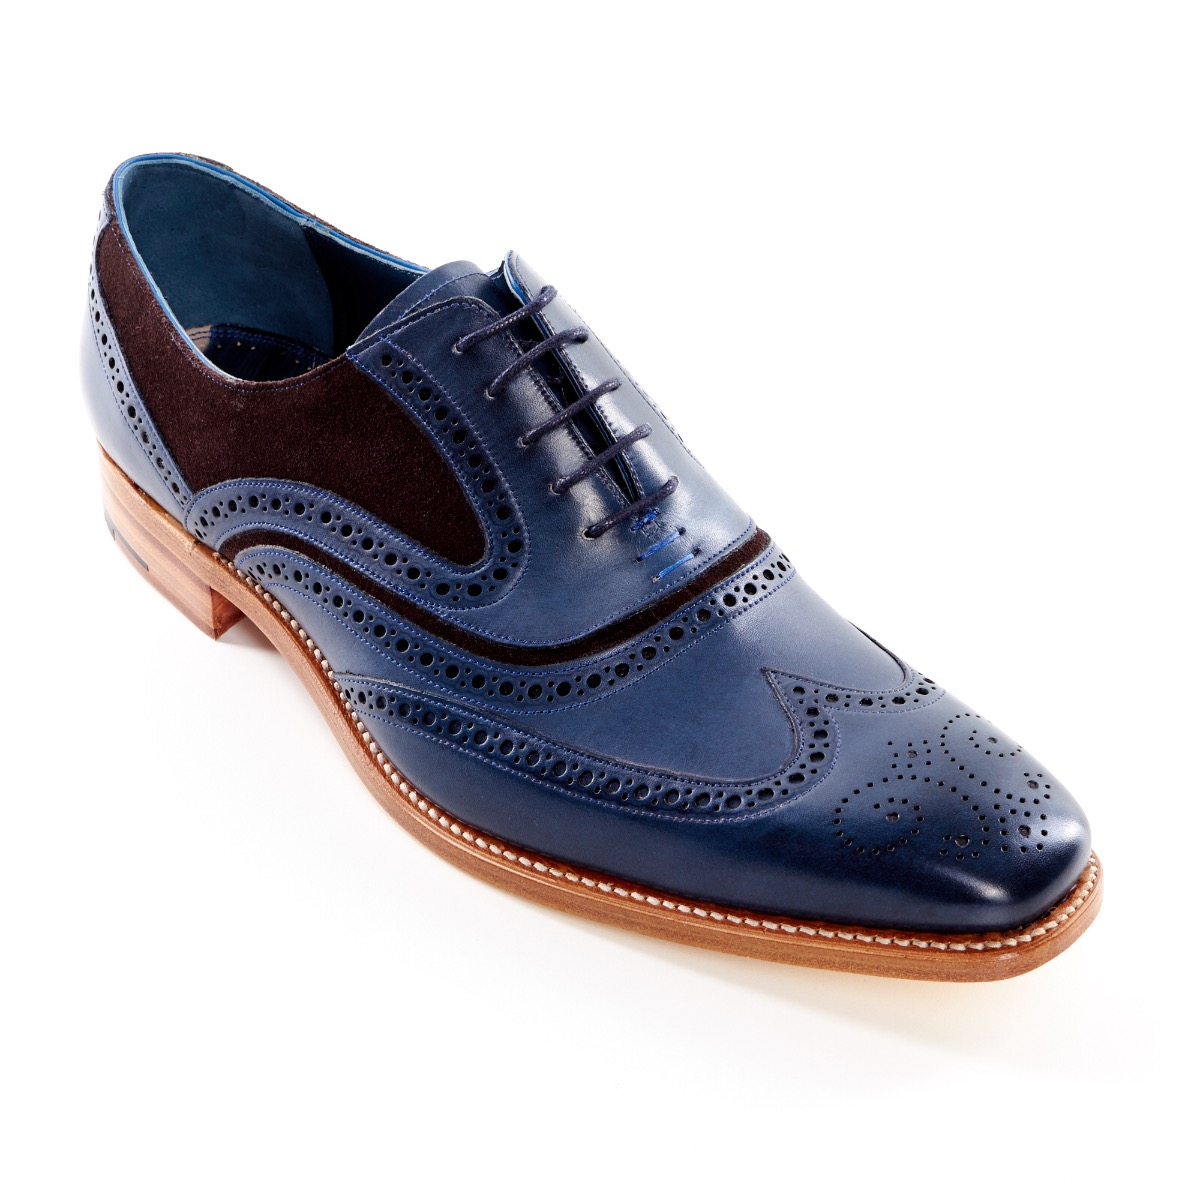 083716ffabe63 Dress Brogue McClean Hand Painted Navy and Brown Suede by Barker